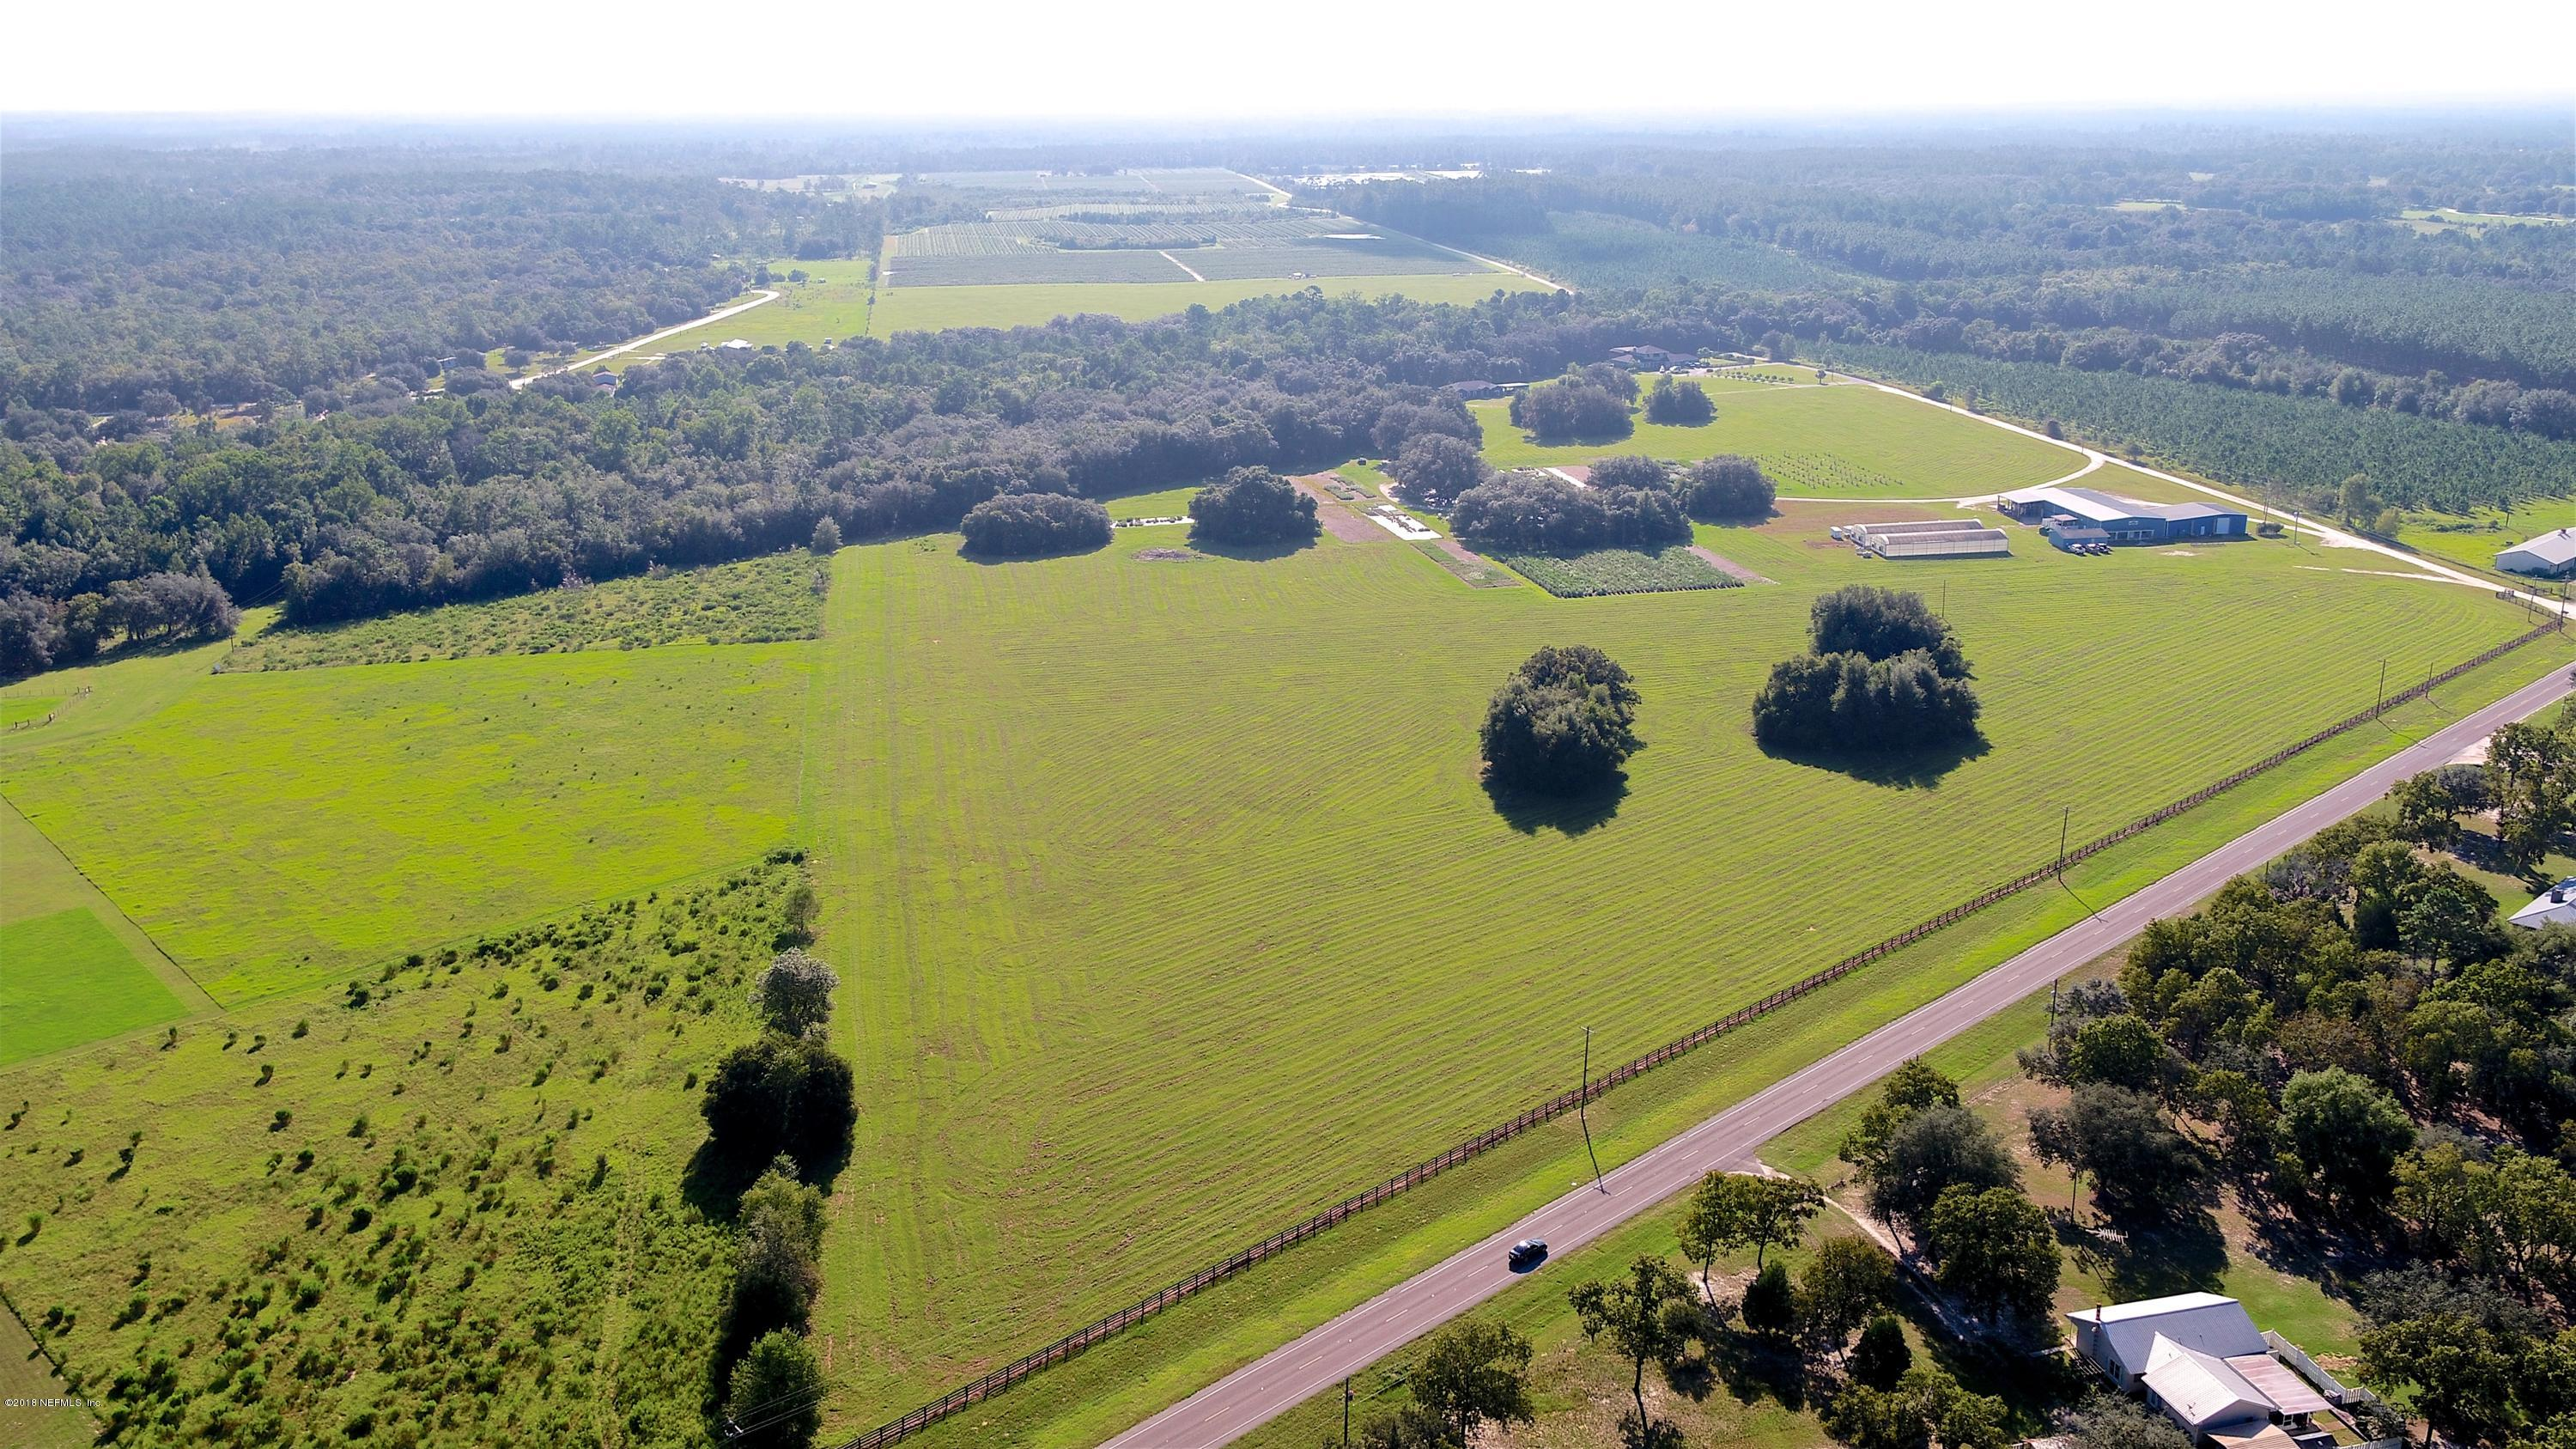 394 COUNTY ROAD 315, INTERLACHEN, FLORIDA 32148, ,Vacant land,For sale,COUNTY ROAD 315,967736